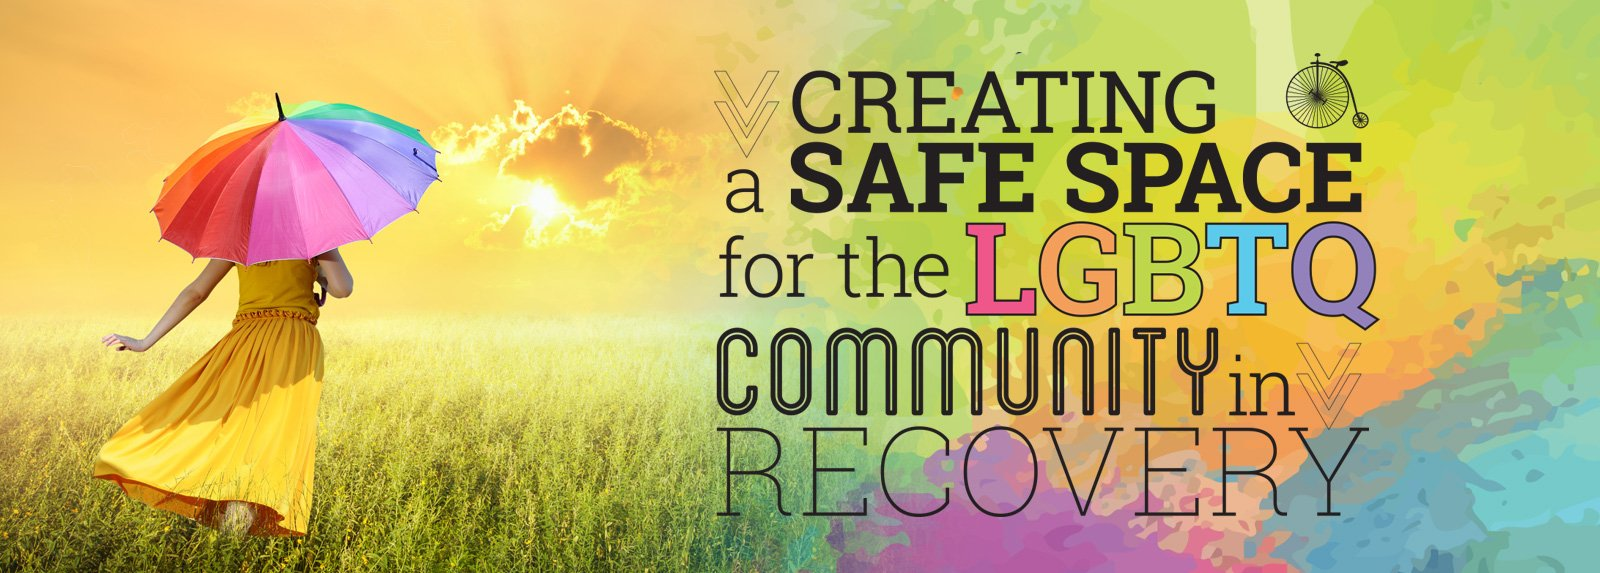 LGBTQ-Addiction-Rehab-Header-Inspire-Recovery